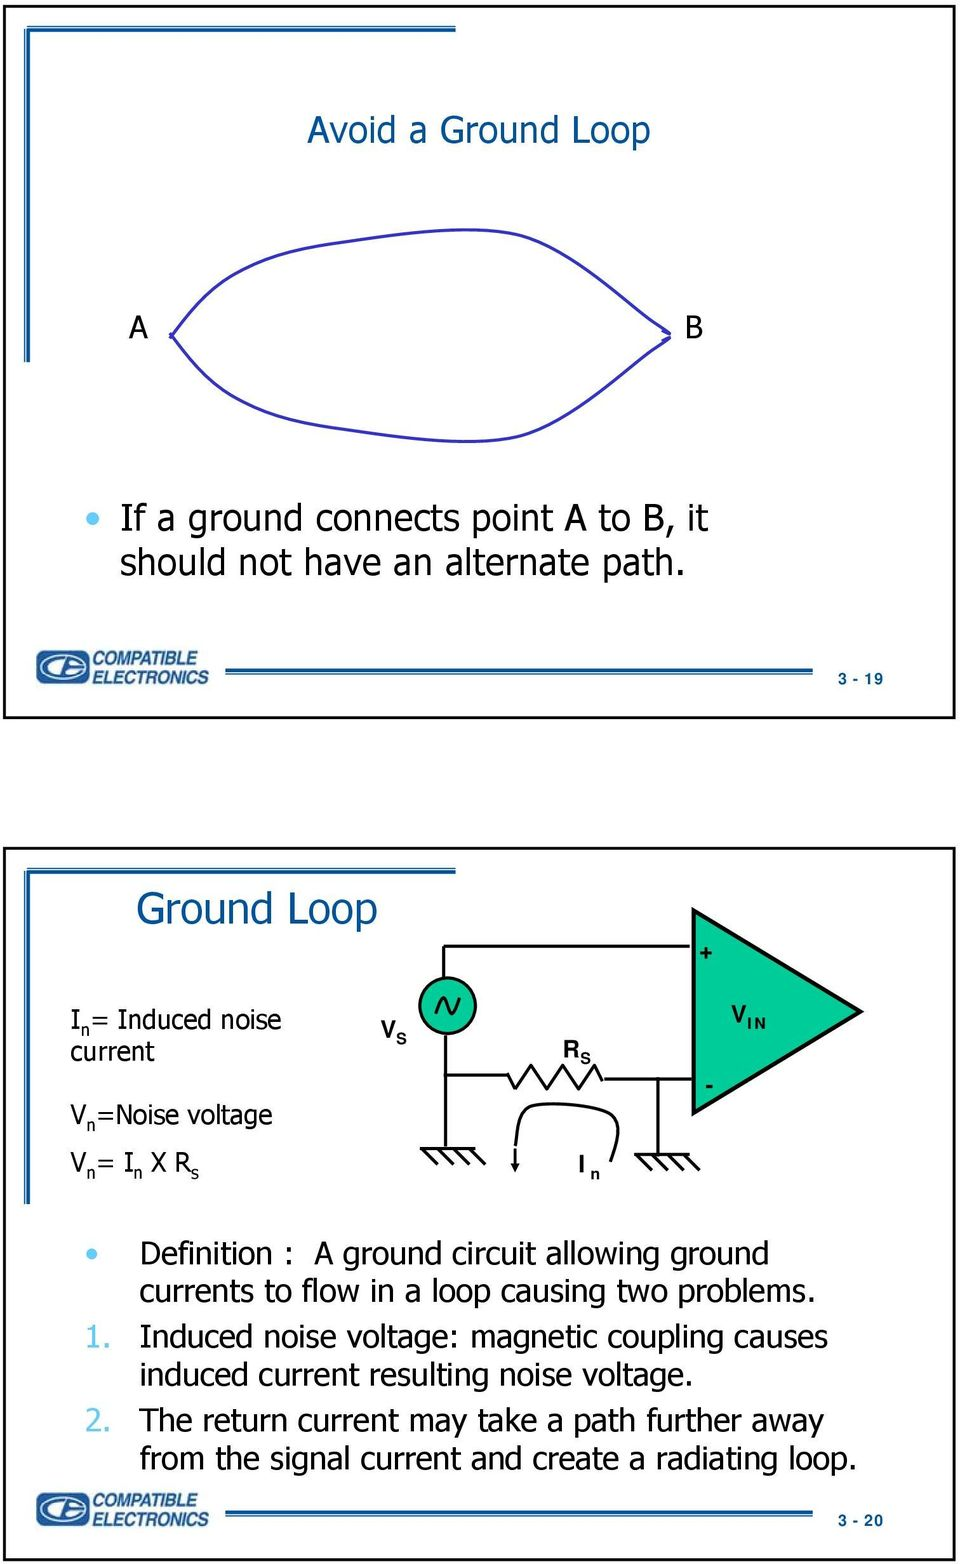 circuit allowing ground currents to flow in a loop causing two problems. 1.